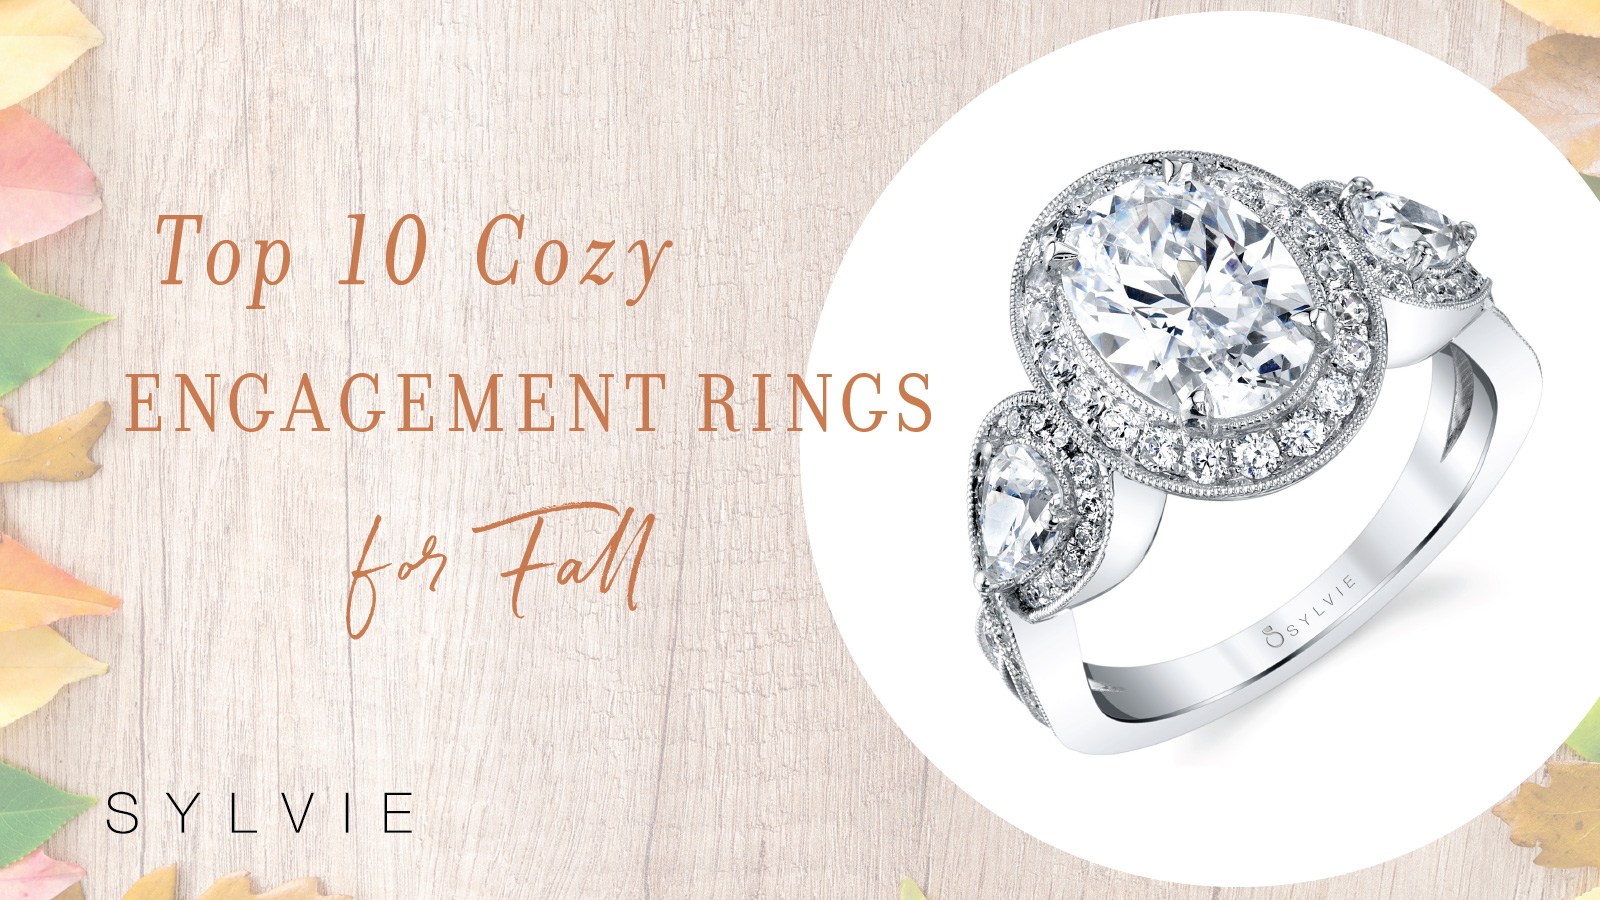 Top 10 Enement Rings | Our Top 10 Cozy Engagement Rings For Fall